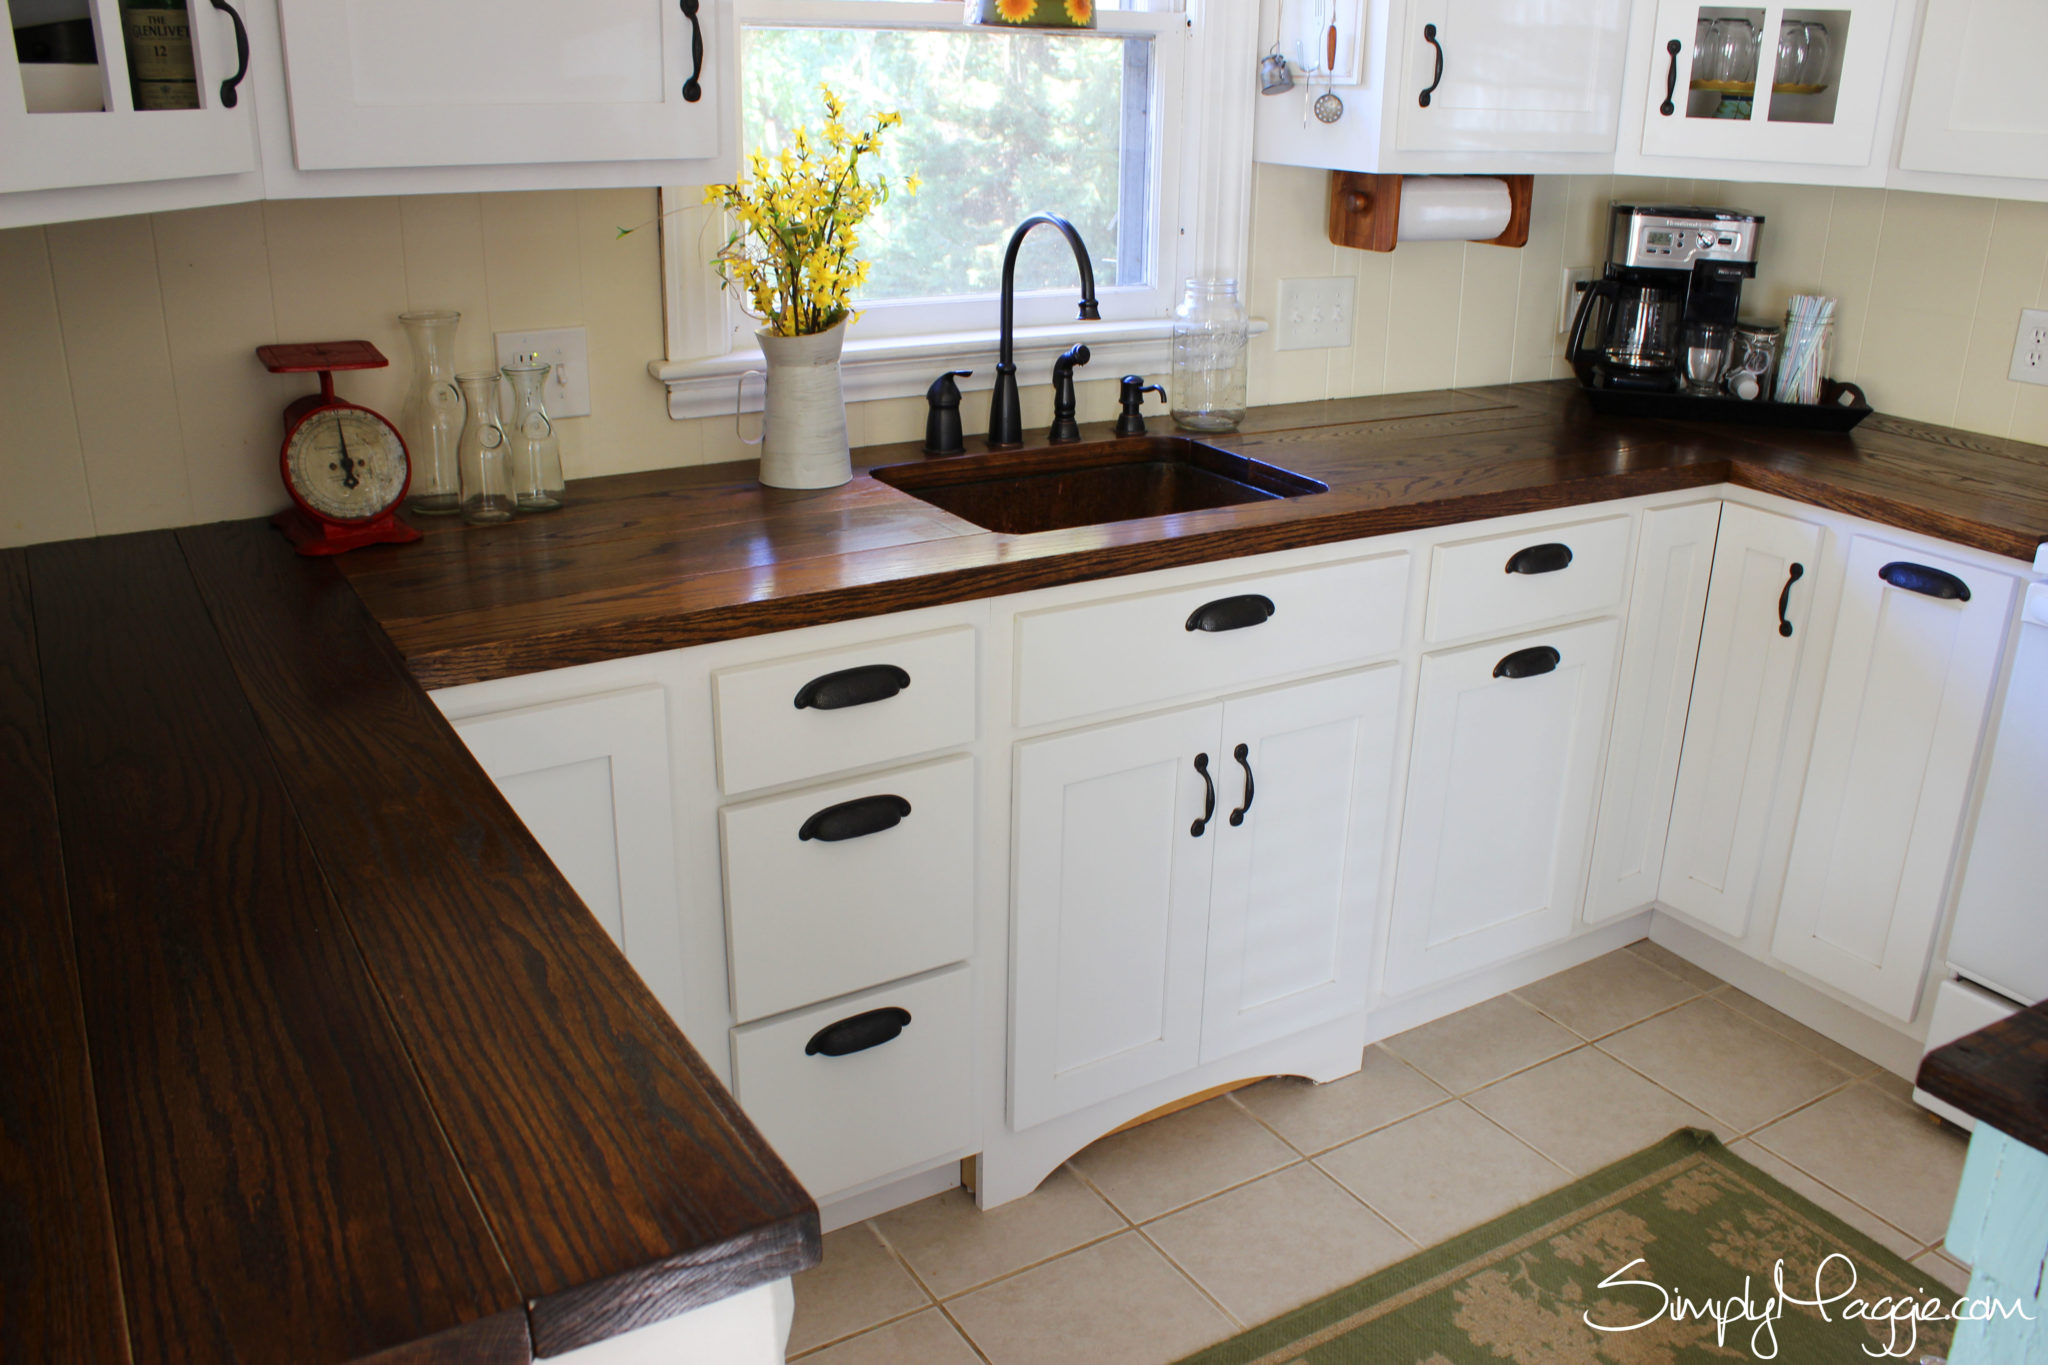 Dark-wooden-countertop-stands-out-in-a-small-kitchen